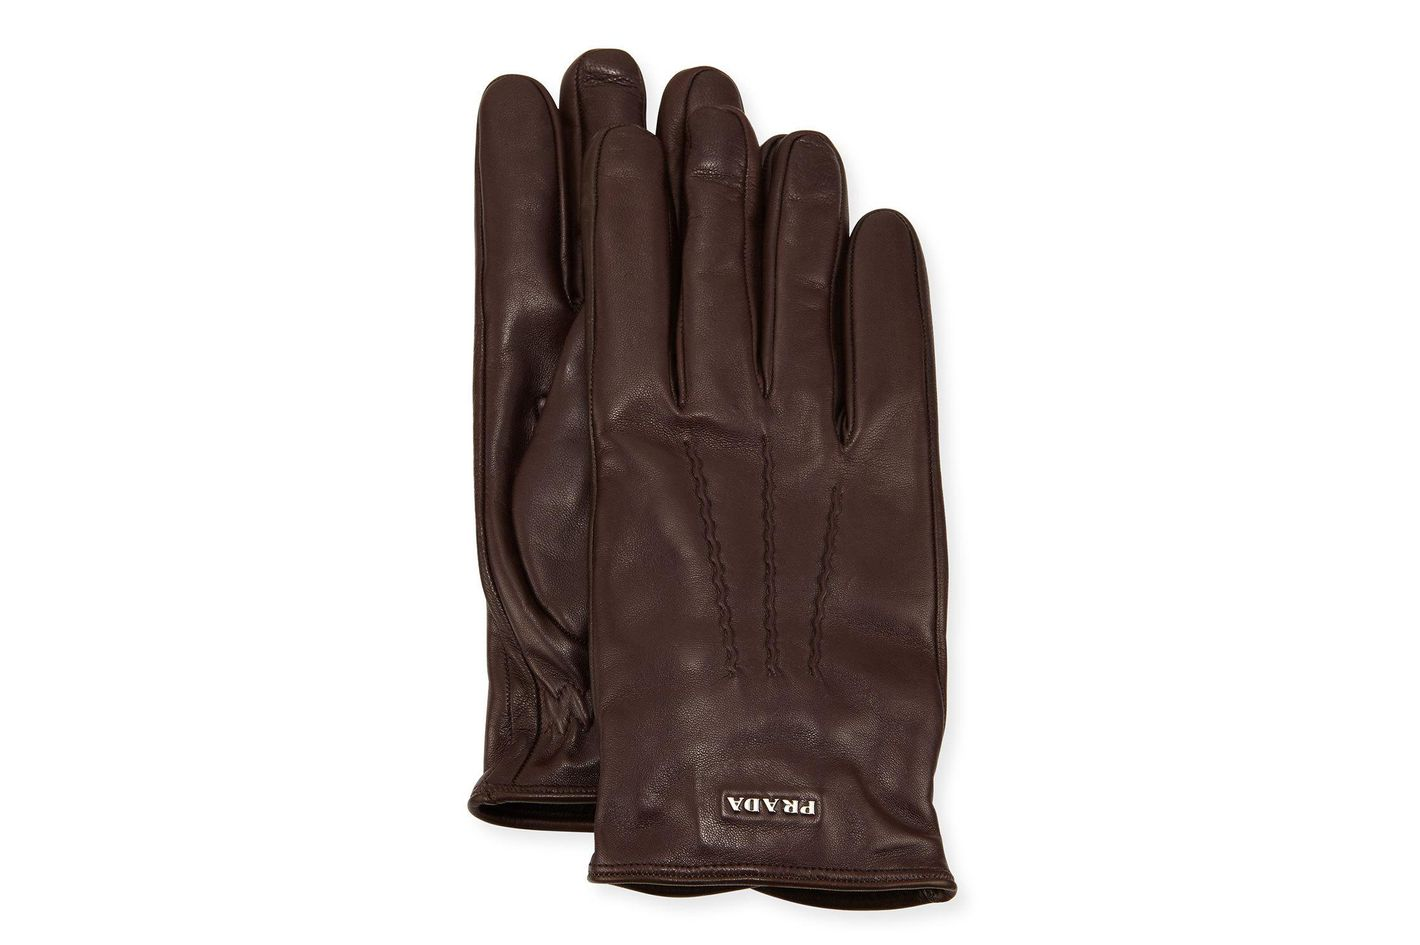 Prada Napa Leather Gloves With Logo